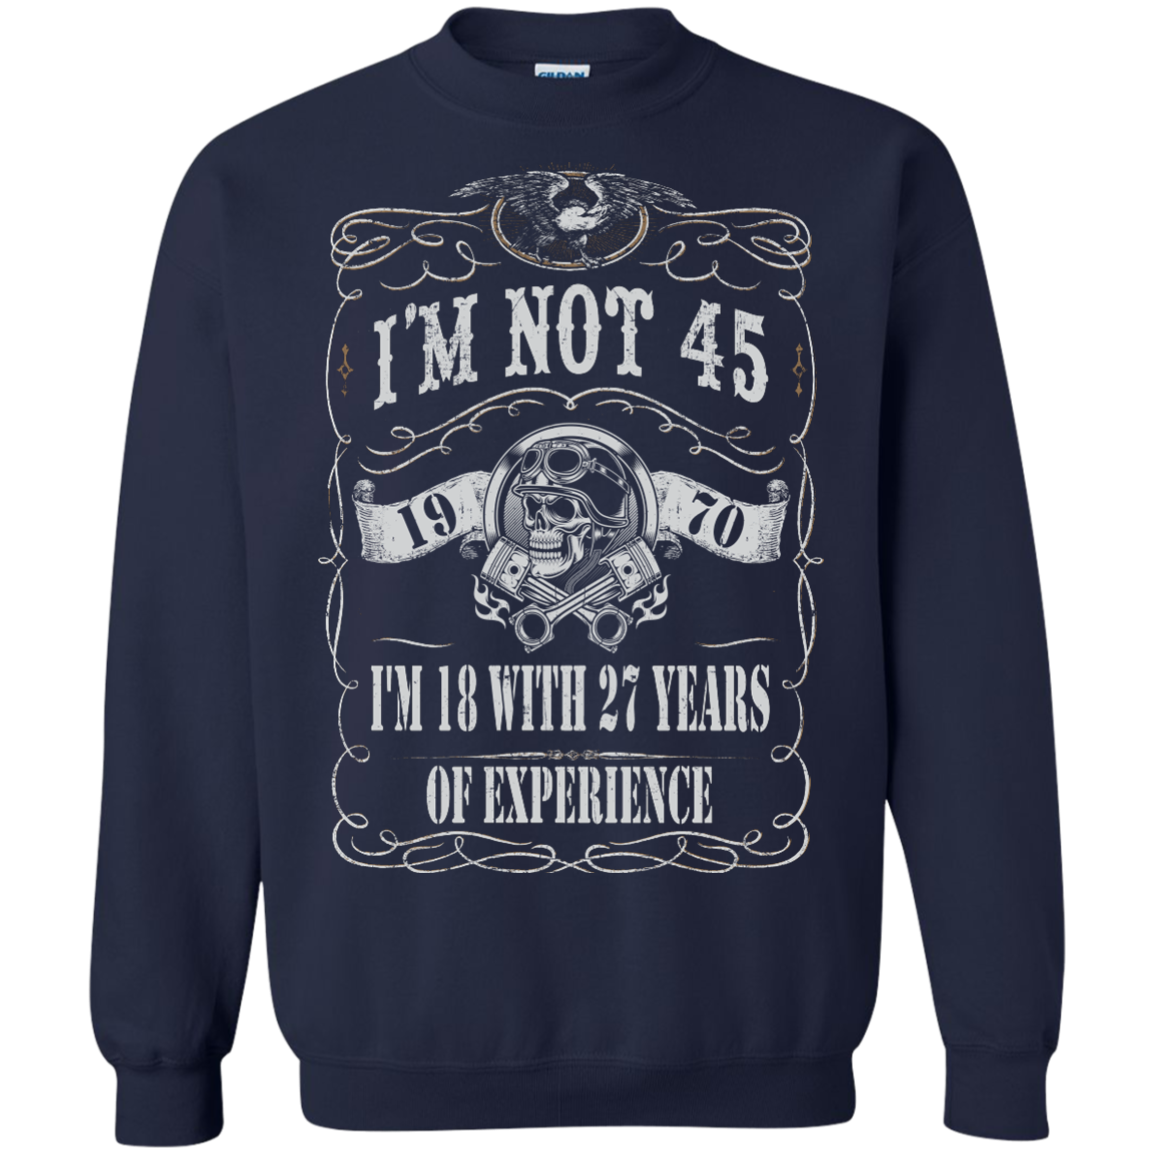 1970 Im Not 45 Im 18 With 27 Years Of Experience T-Shirts - The Sun Cat